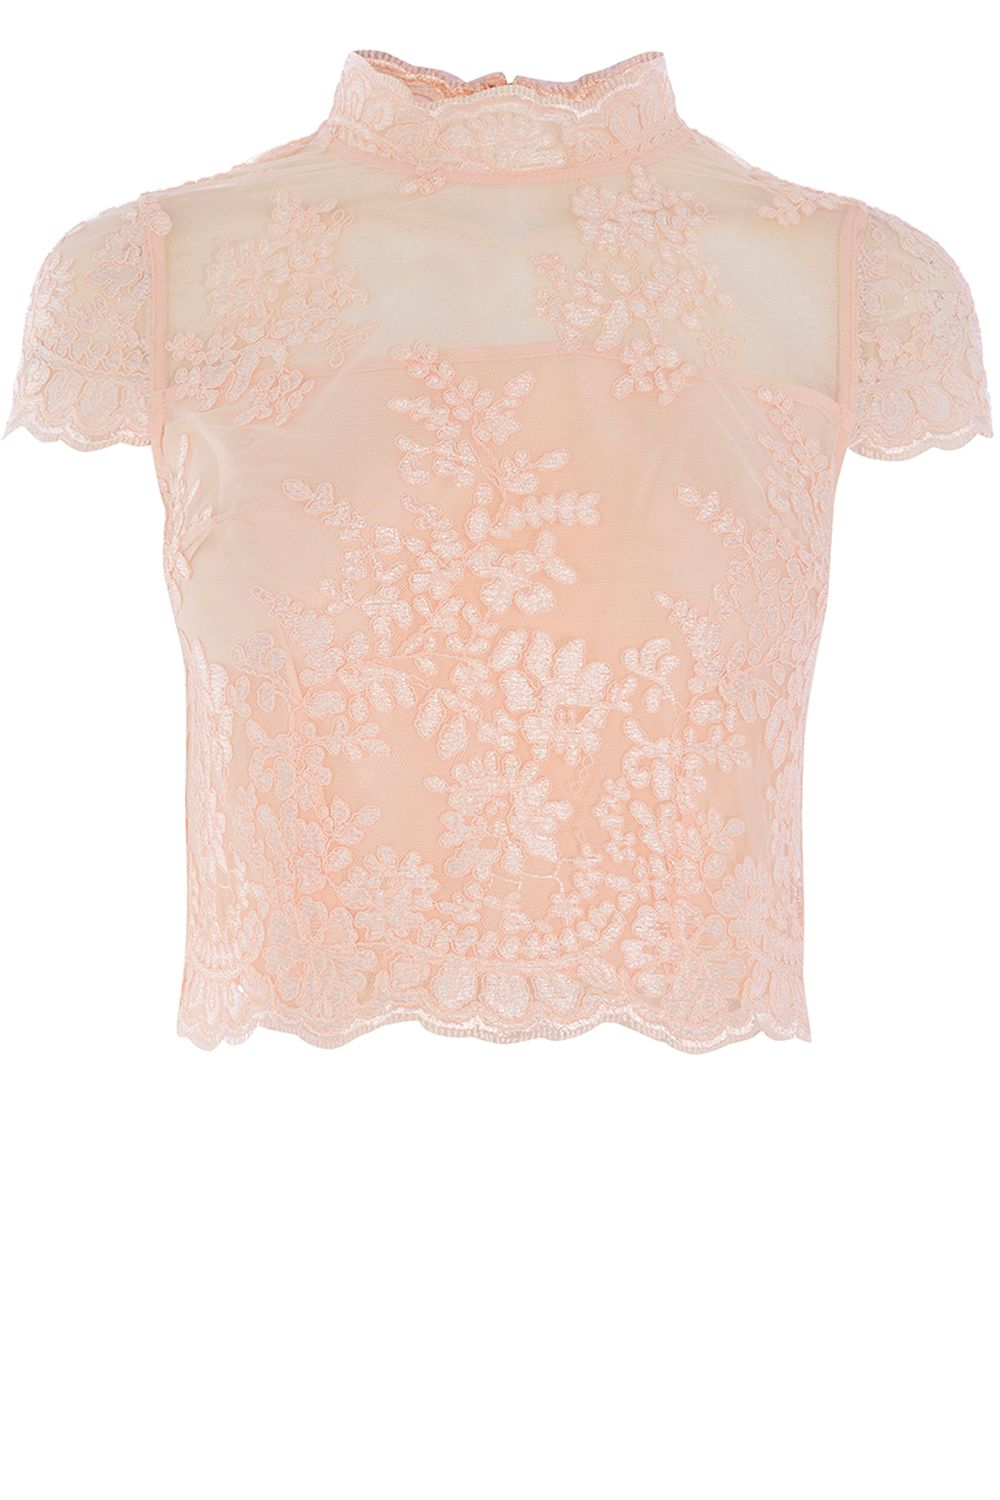 Coast Jen Lace Bridesmaid Top, Pink